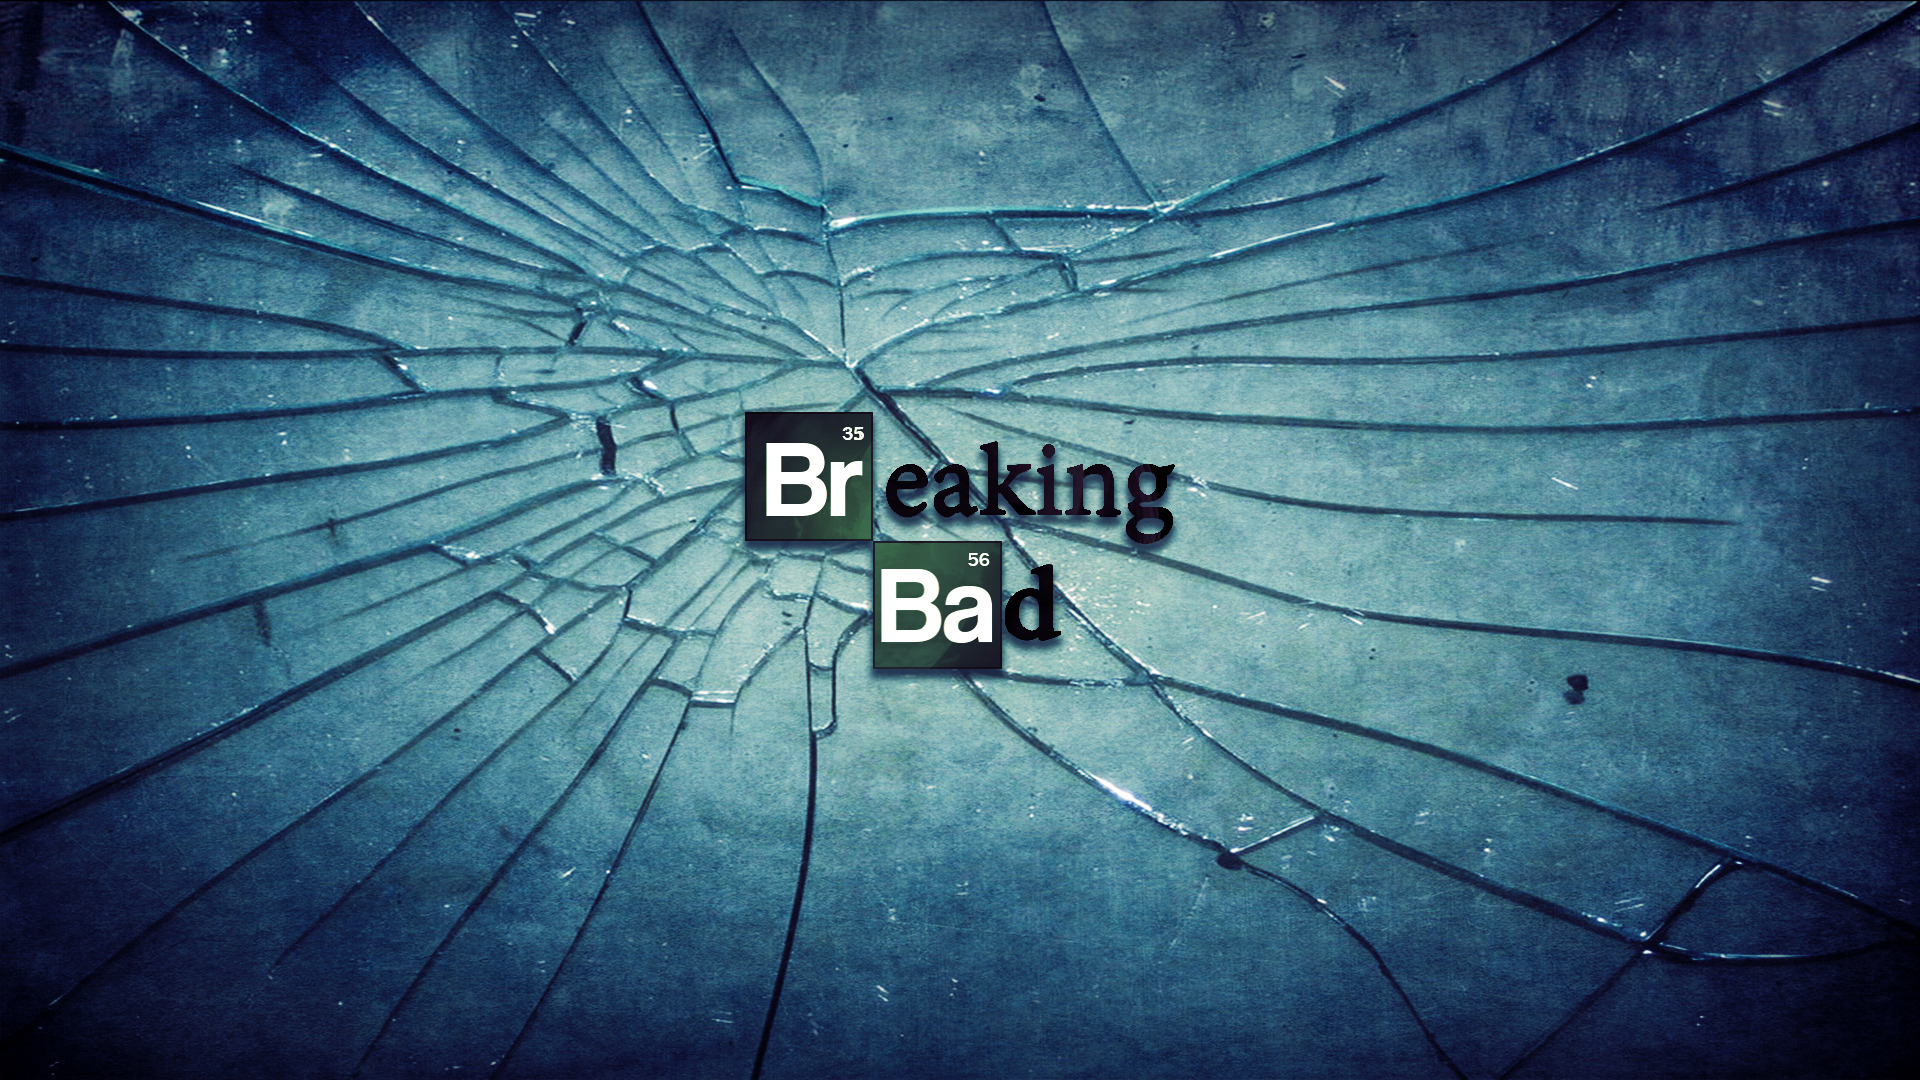 Free Download Breaking Bad Wallpapers 1920x1080 For Your